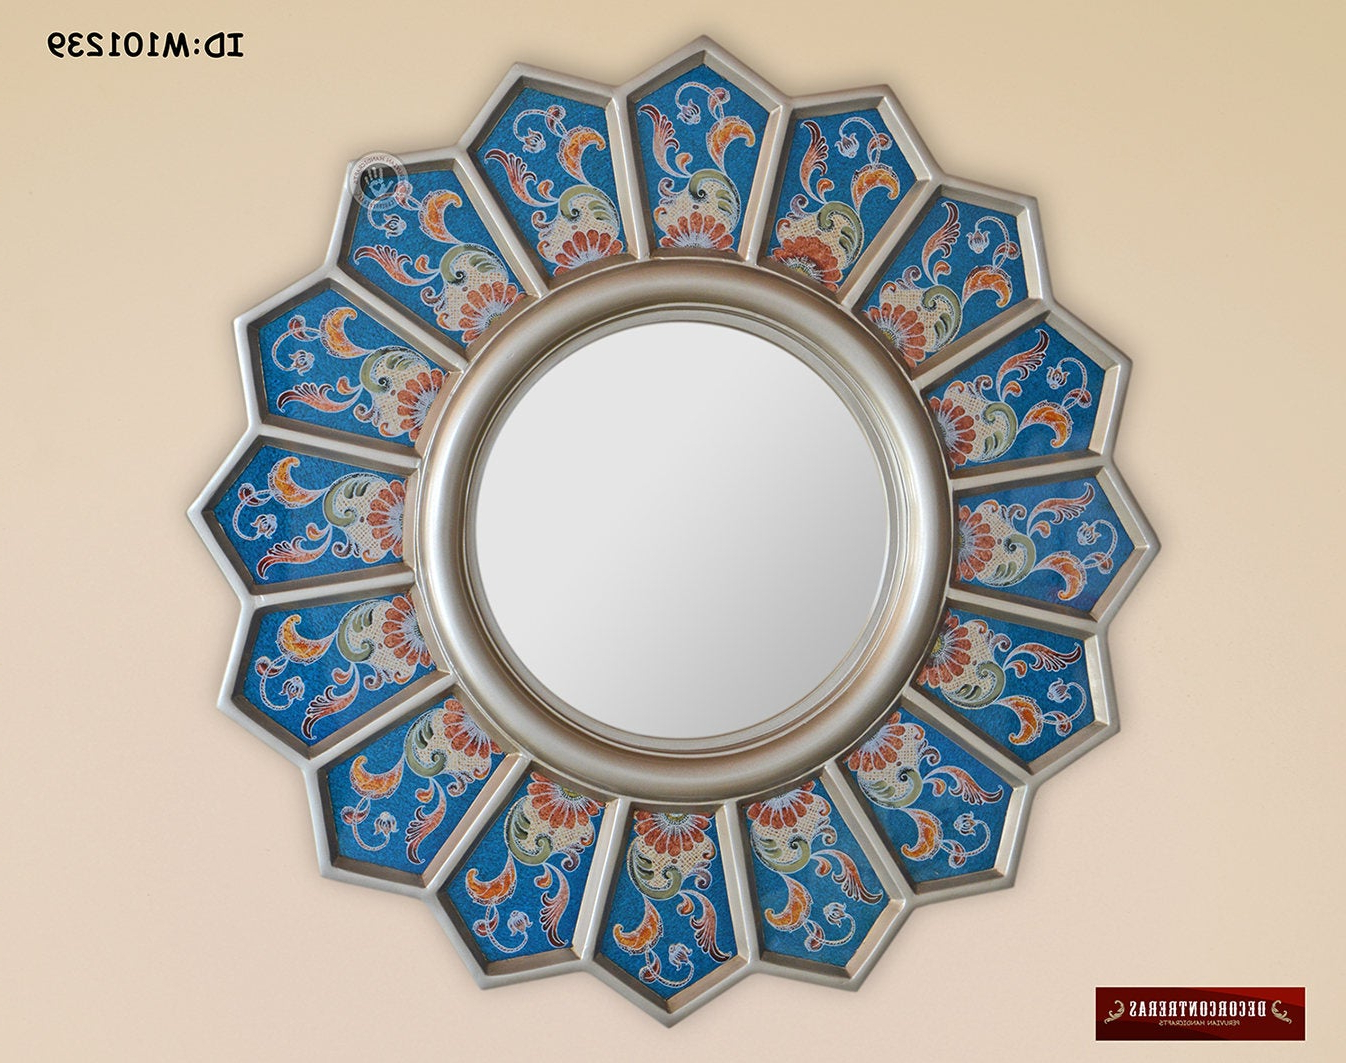 Decorative Wall Mirrors For Bathrooms Inside Most Recent Round Mirrors Wall Decor 'blue Sunflower', Decorative Wall Mirrors, Handpainted Glass Mirror Wall Art, Bathroom Accent Round Wall Mirror (View 20 of 20)